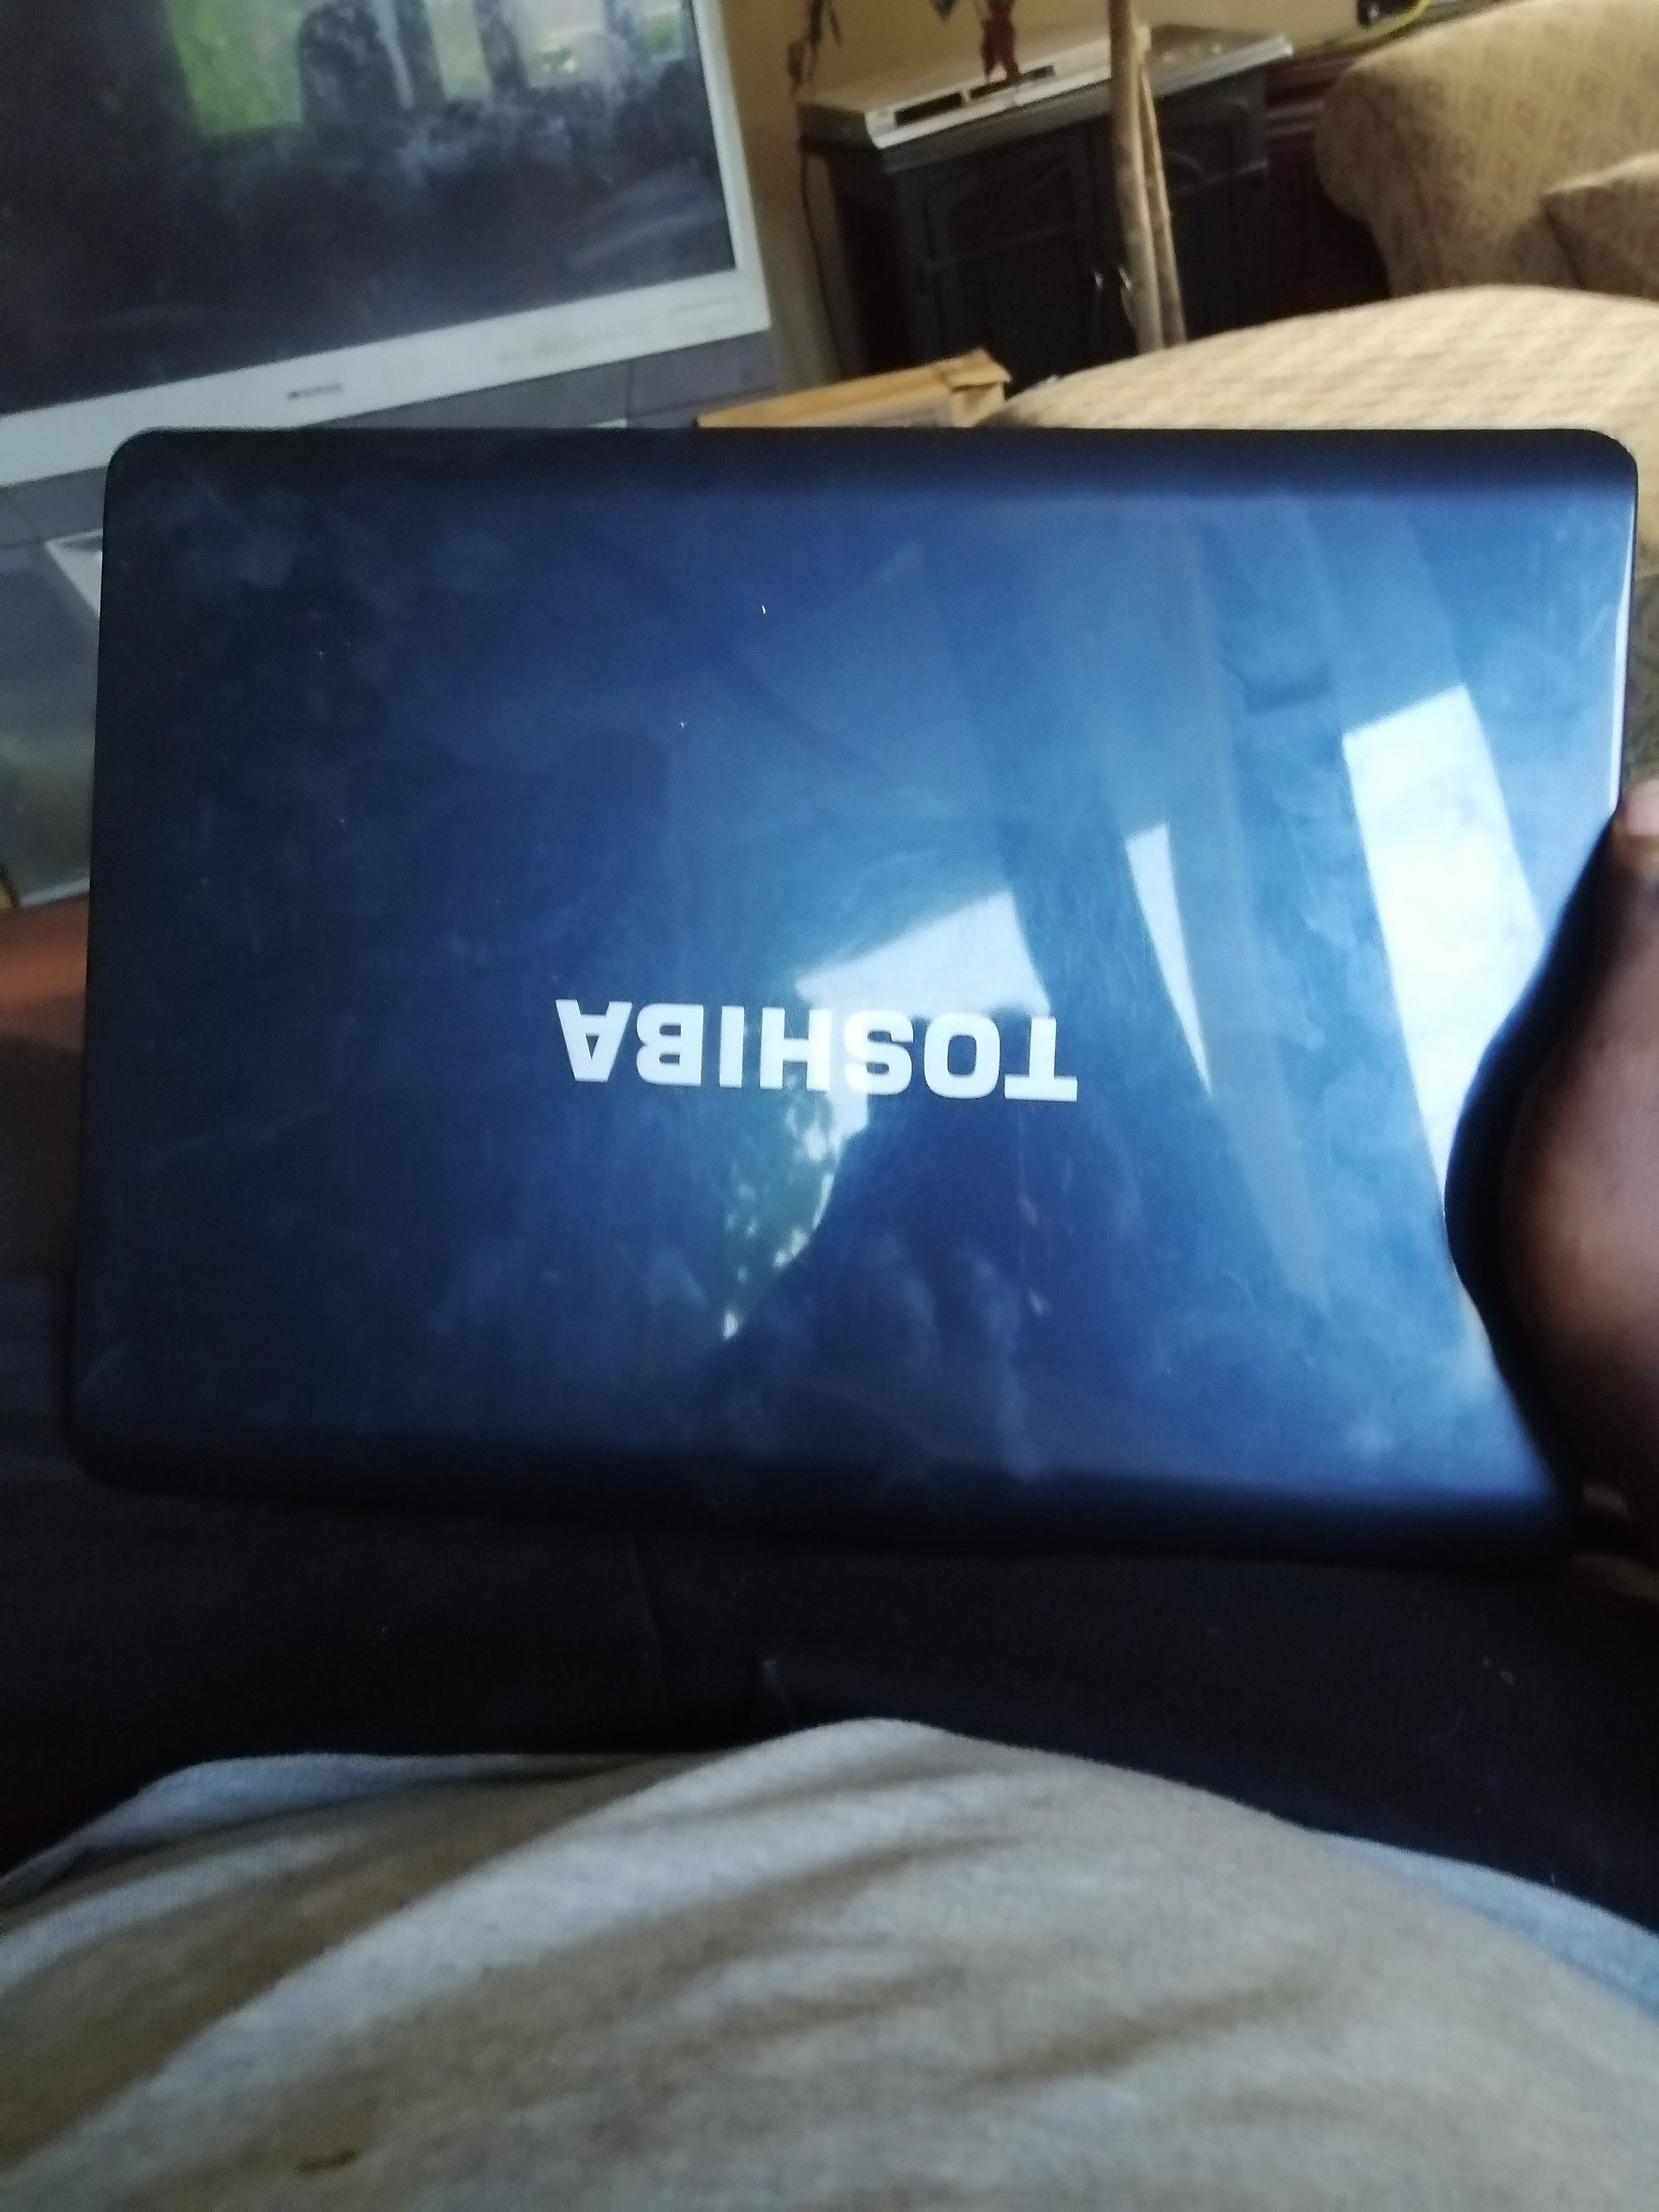 I don't know to much about the laptop I'm as 200 are best offer